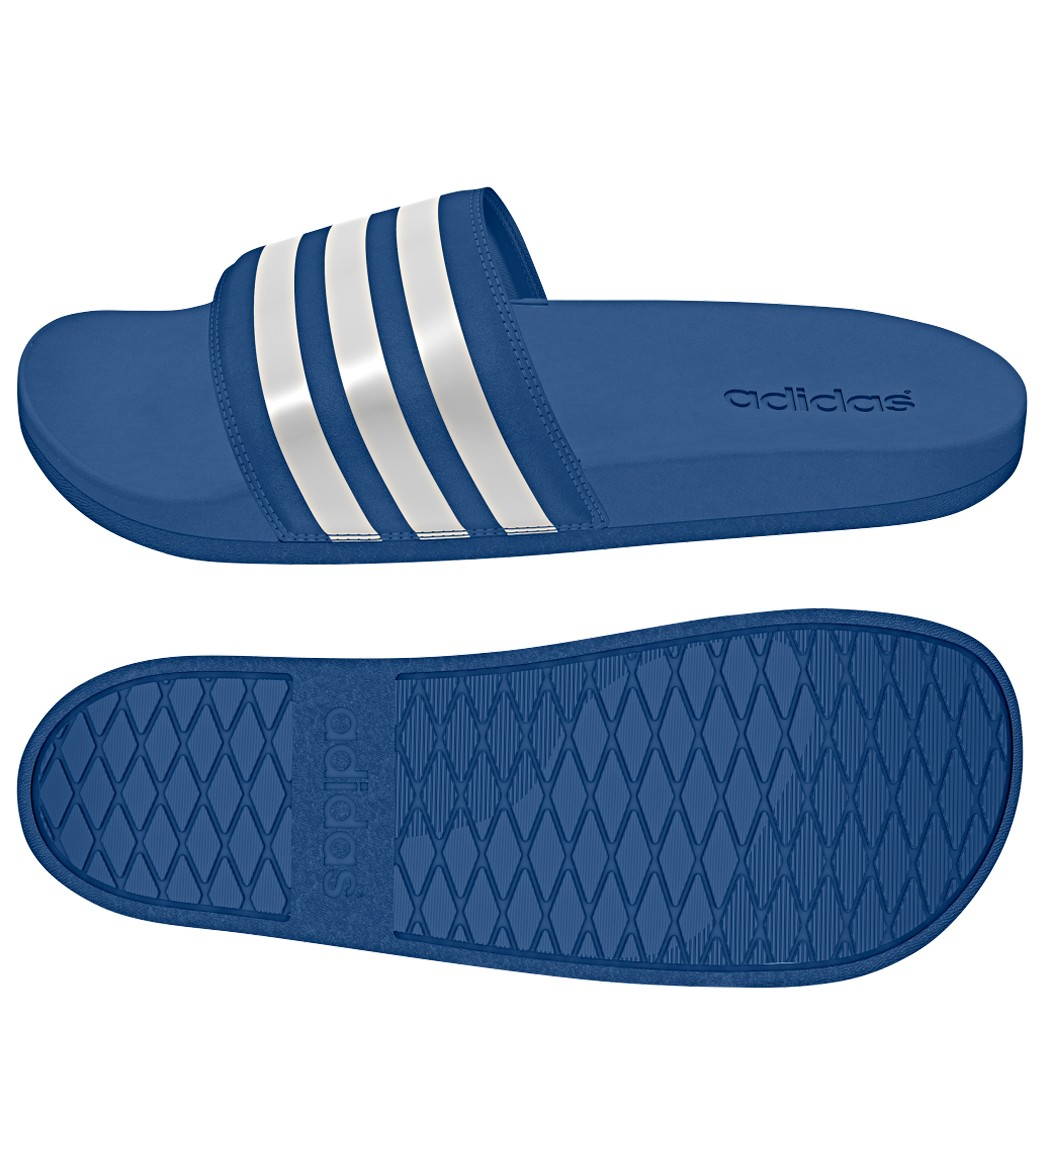 79b30881847c Buy cheap adilette adidas sandals  Up to OFF42% Discounts